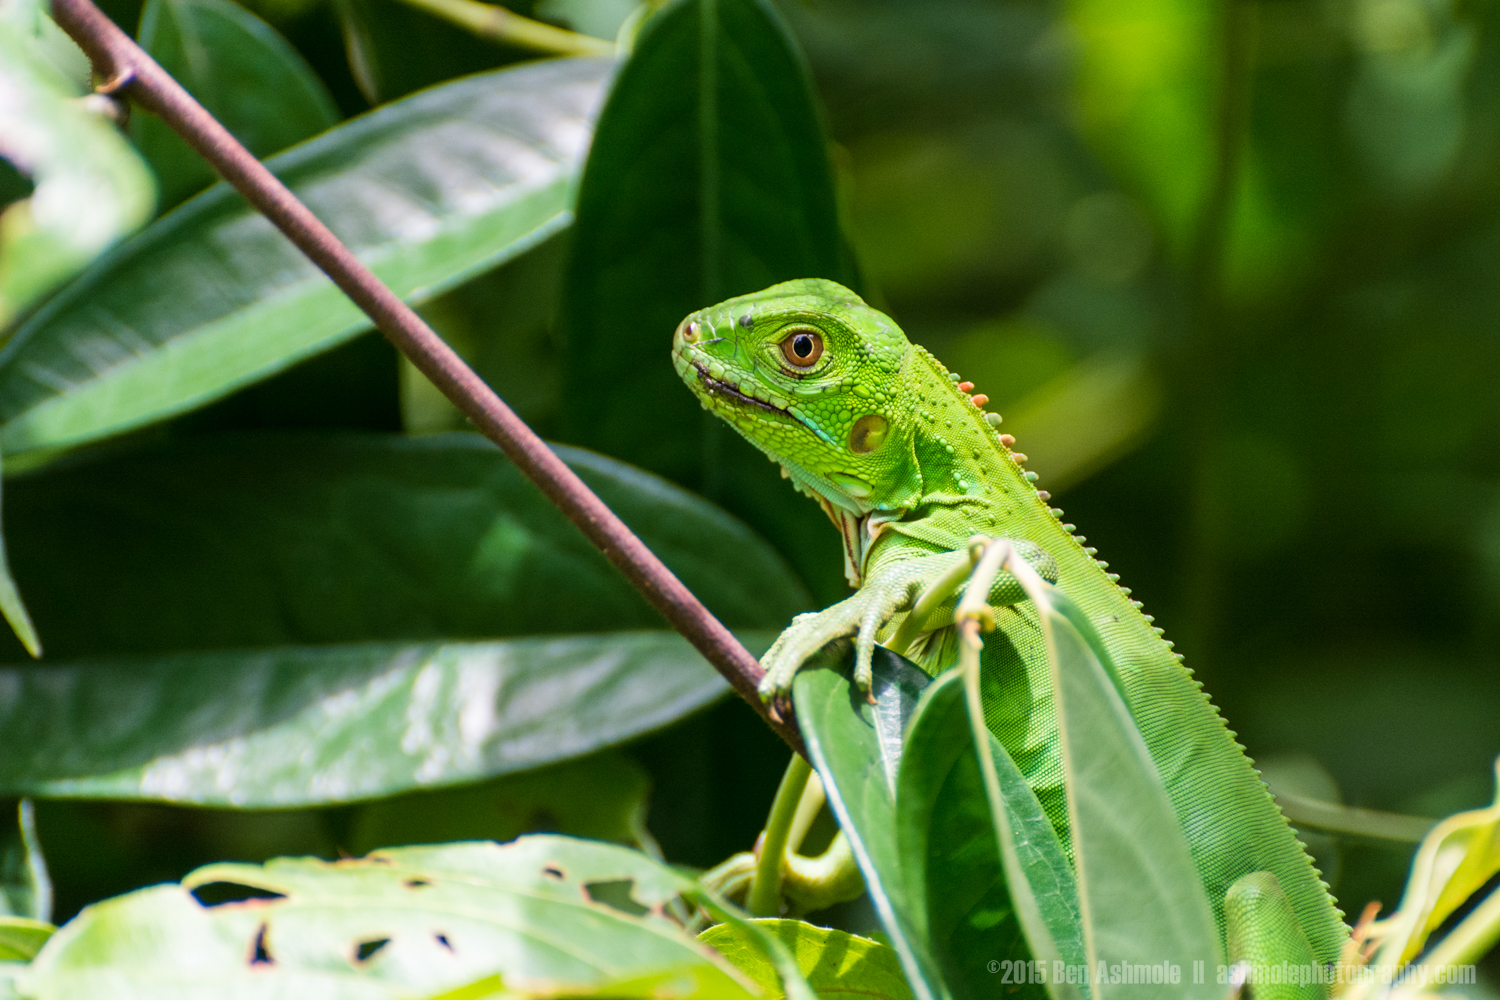 Jungle Lizard, Manuel Antonio National Park, Costa Rica